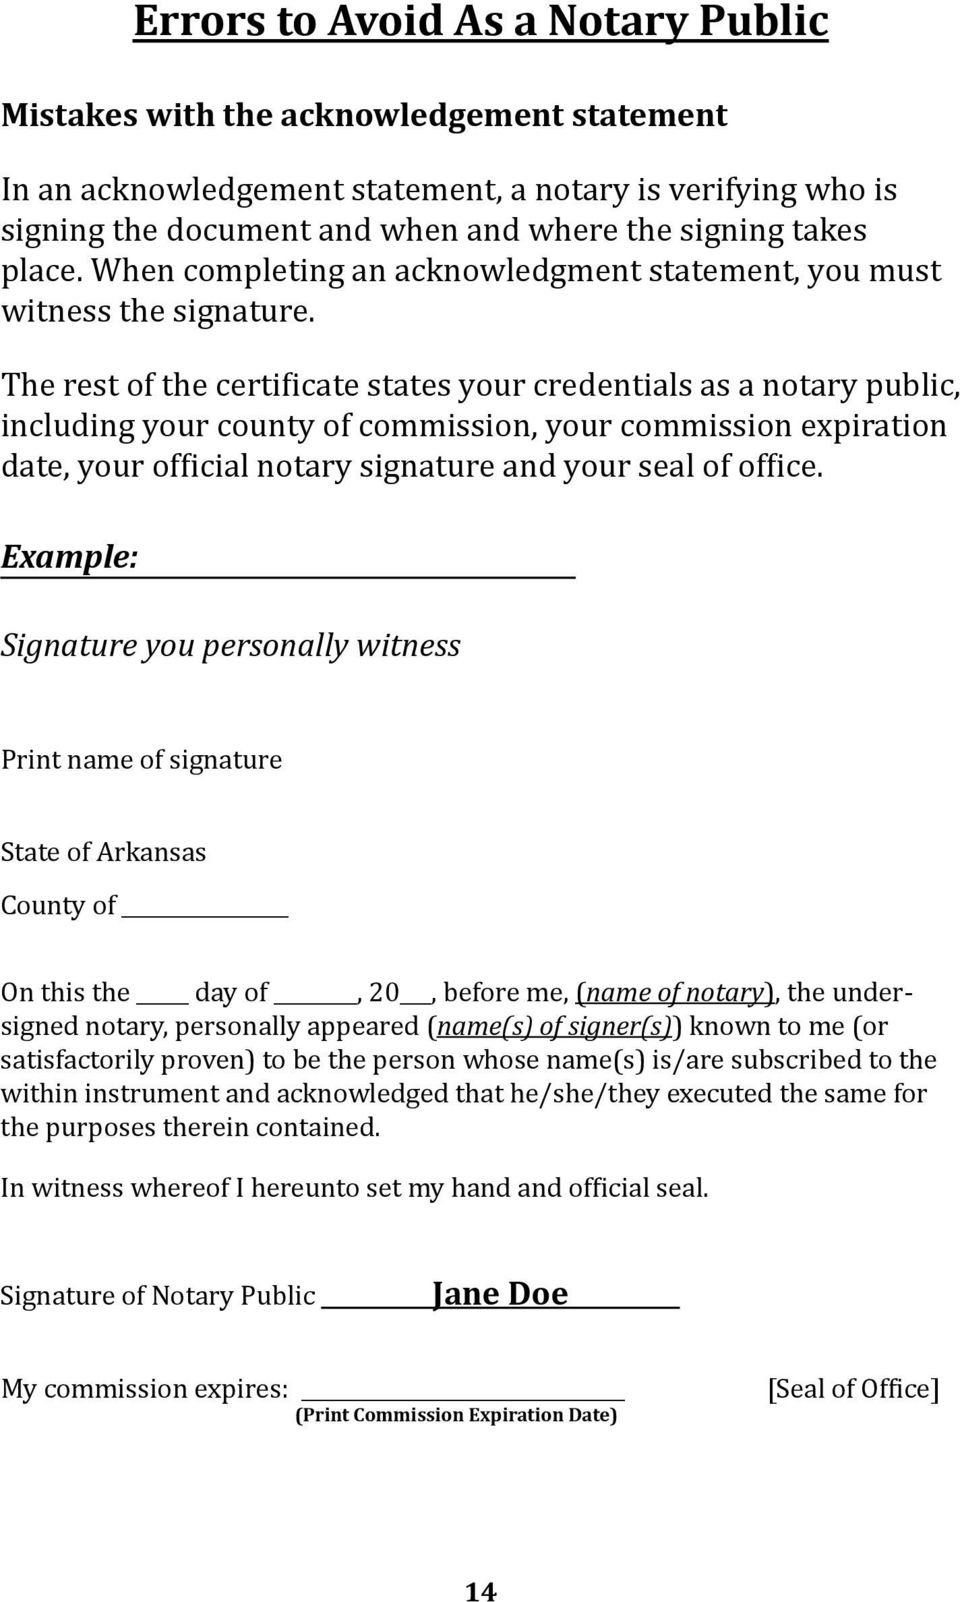 The rest of the certificate states your credentials as a notary public, including your county of commission, your commission expiration date, your official notary signature and your seal of office.